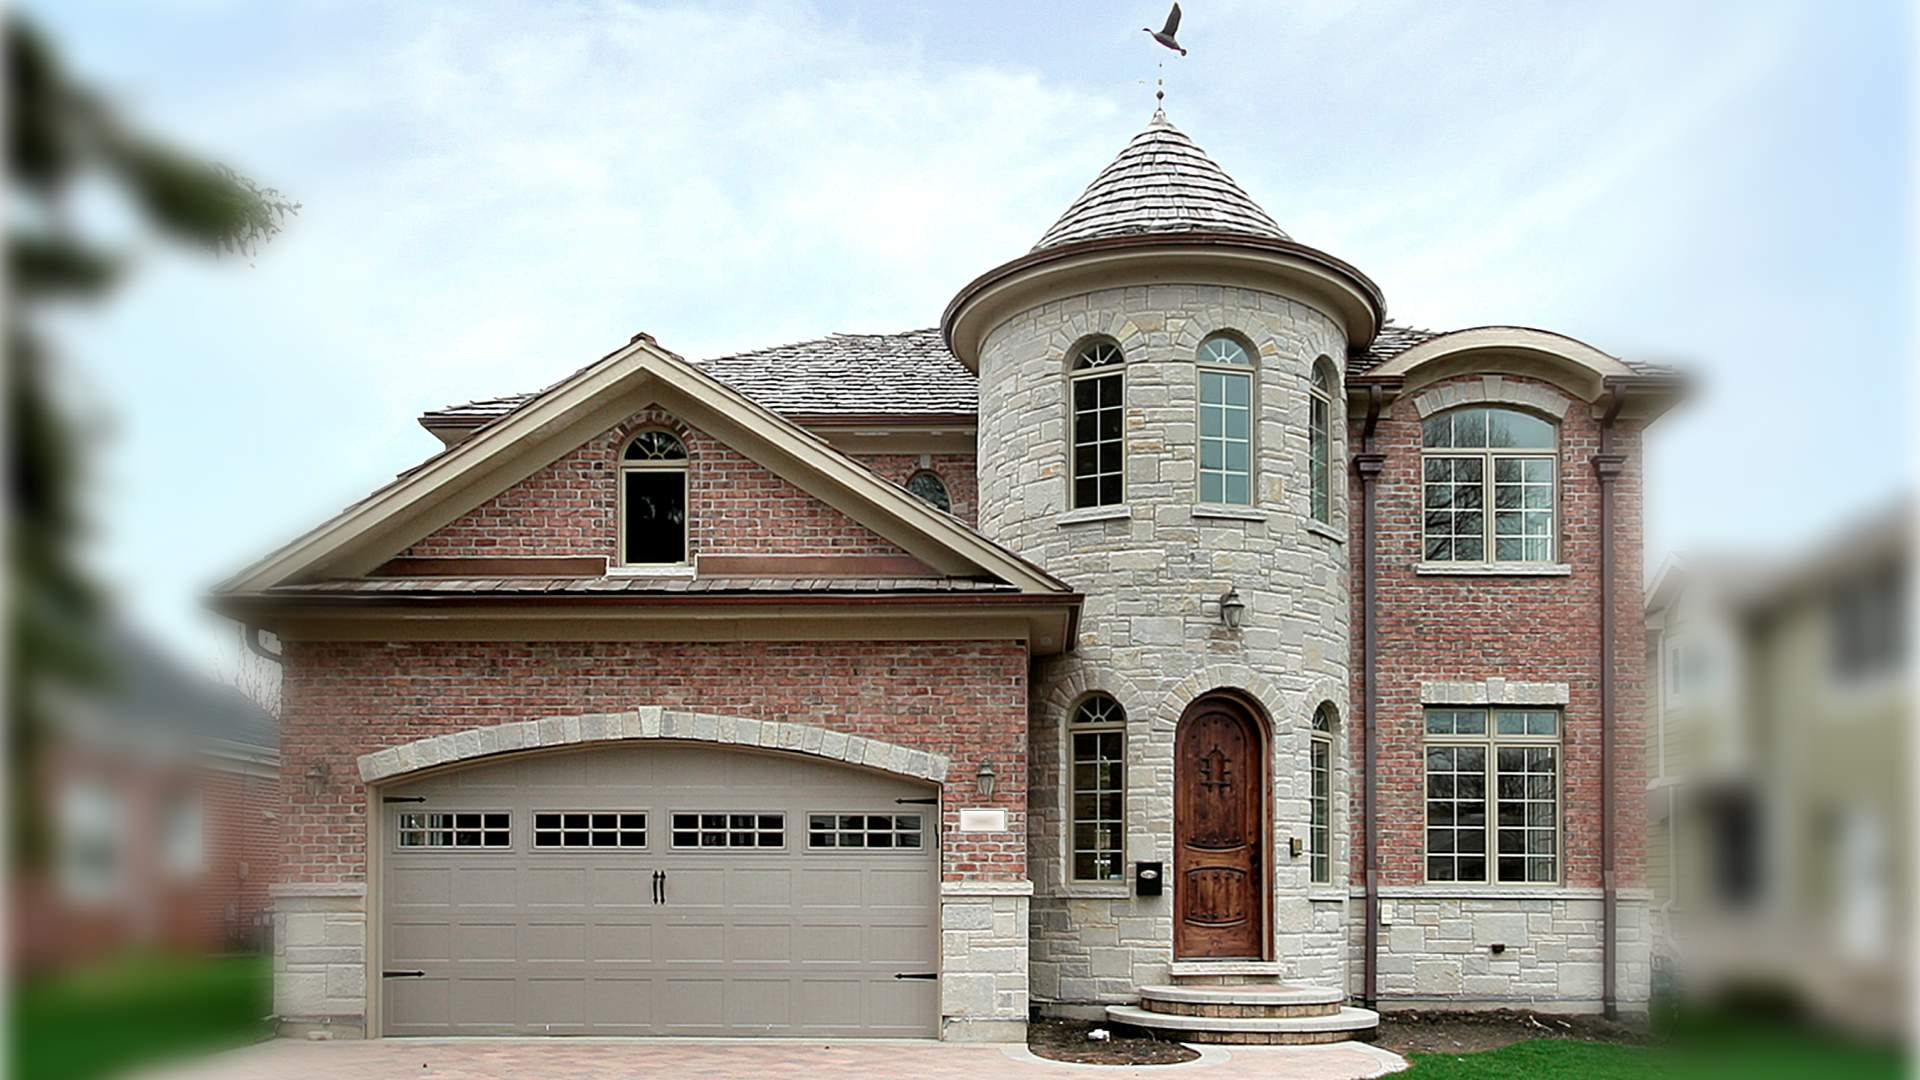 VHT House in Glenview by Greenleaf Developers - front view